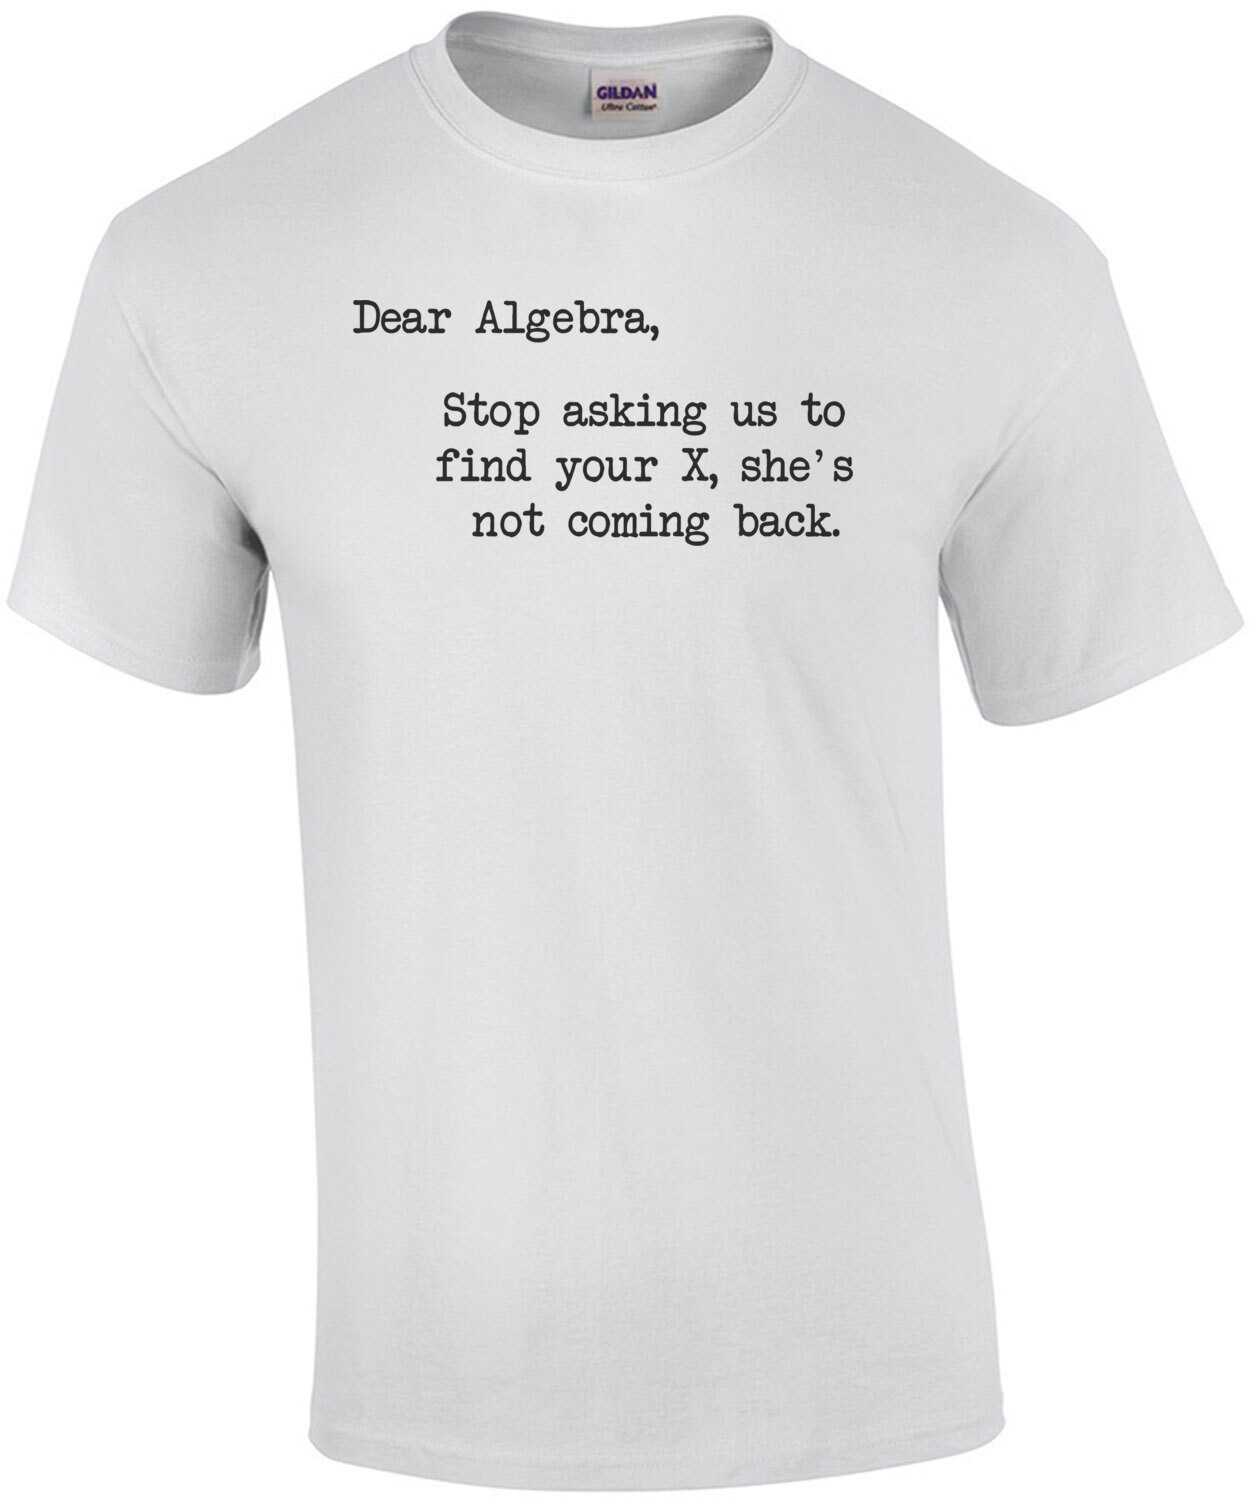 Dear Algebra, Stop Asking Us To Find Your X, She's Not Coming Back T-Shirt